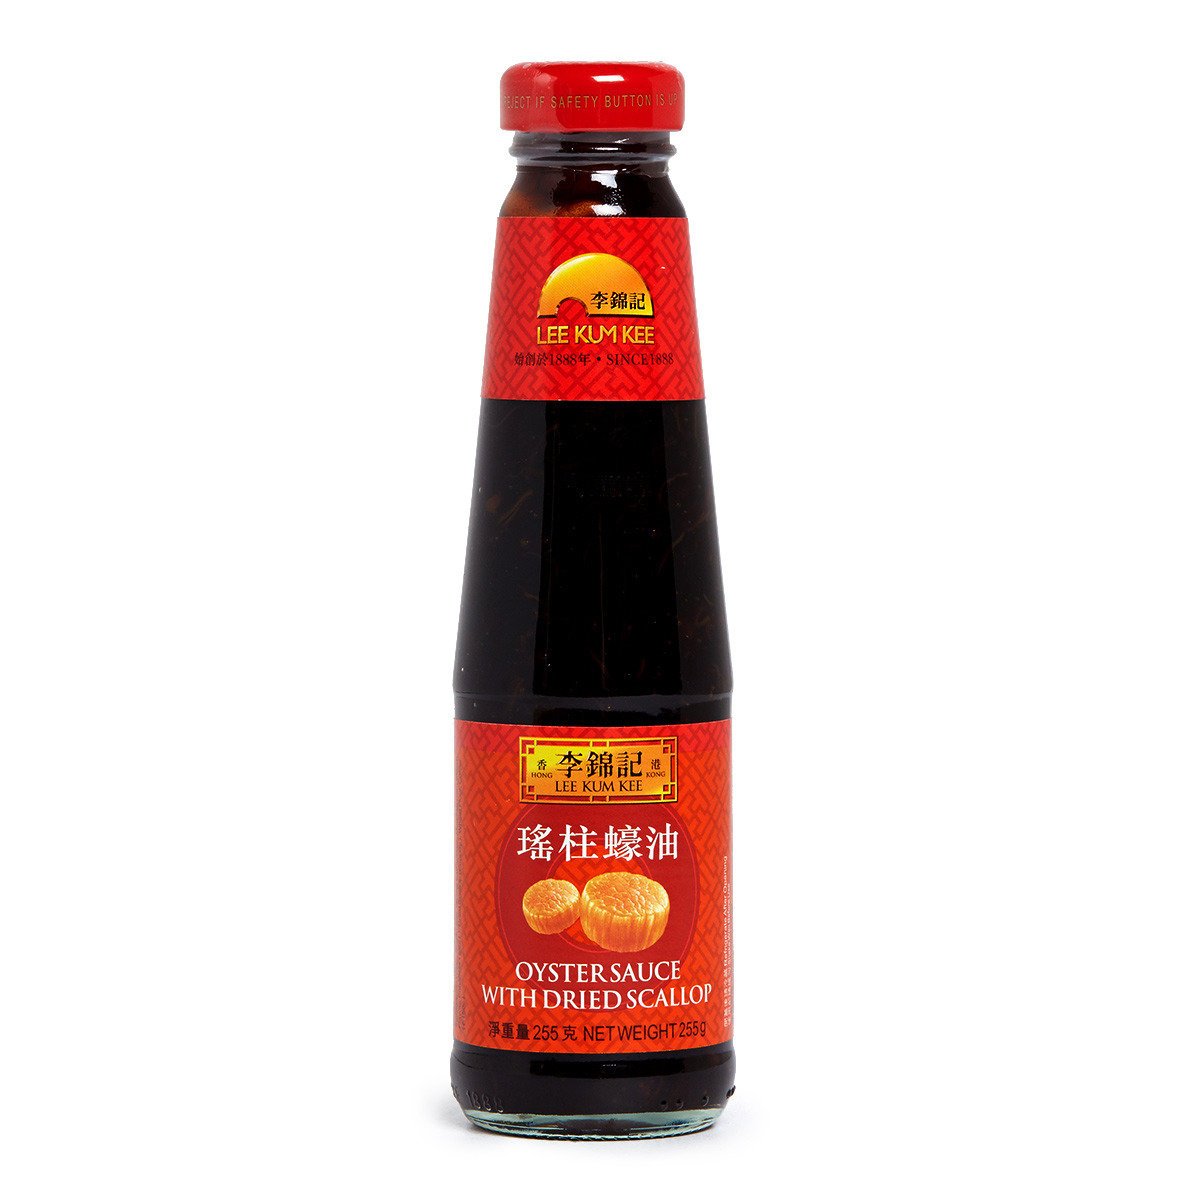 Oyster Sauce with Dried Scallop